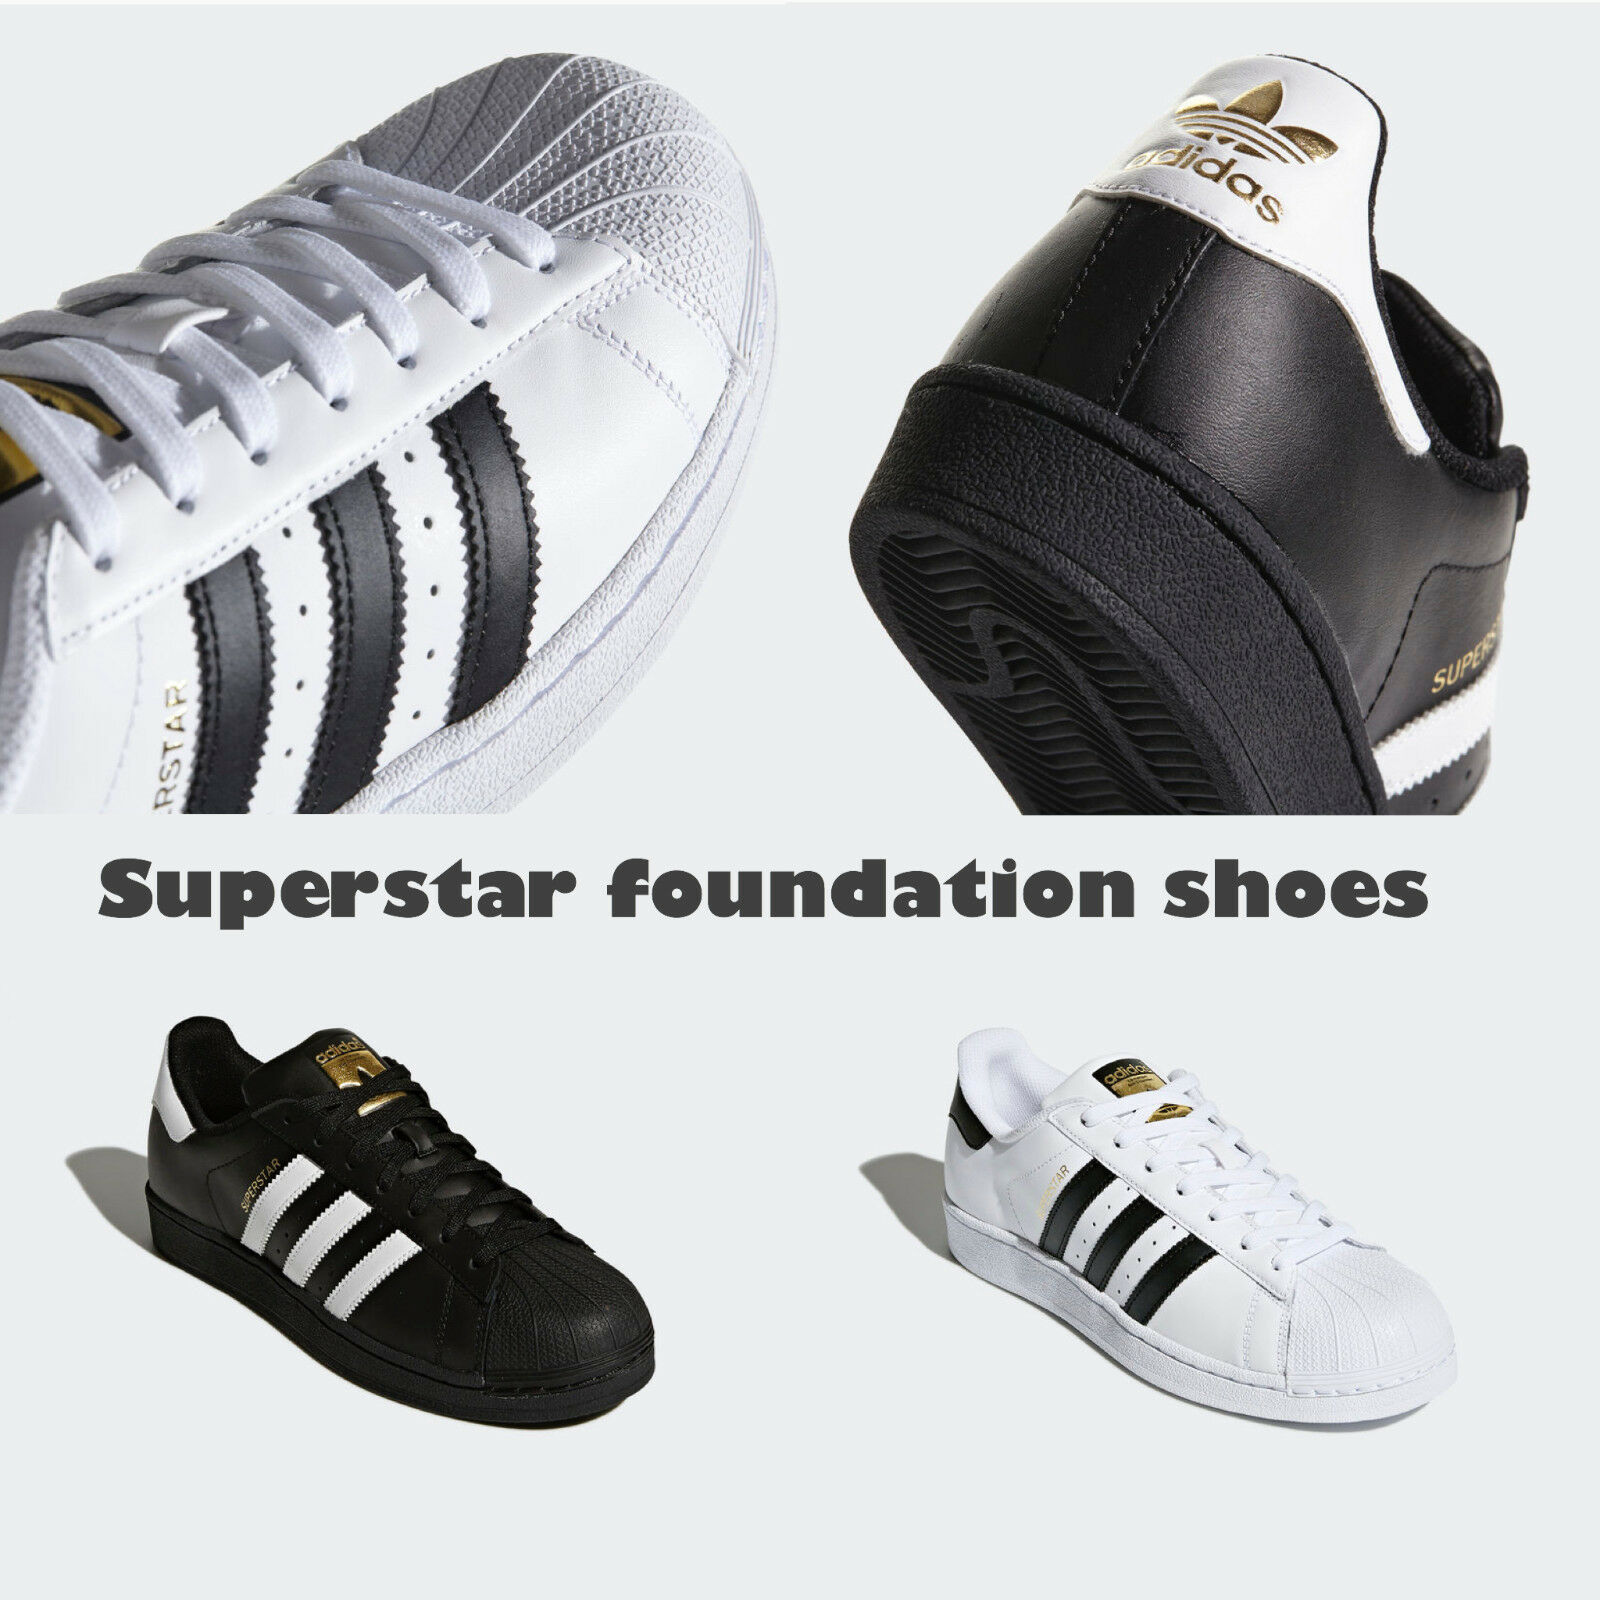 Adidas Superstar Unisex Men's AND Women's WHITE BLACK FOUNDATION Trainers shoes